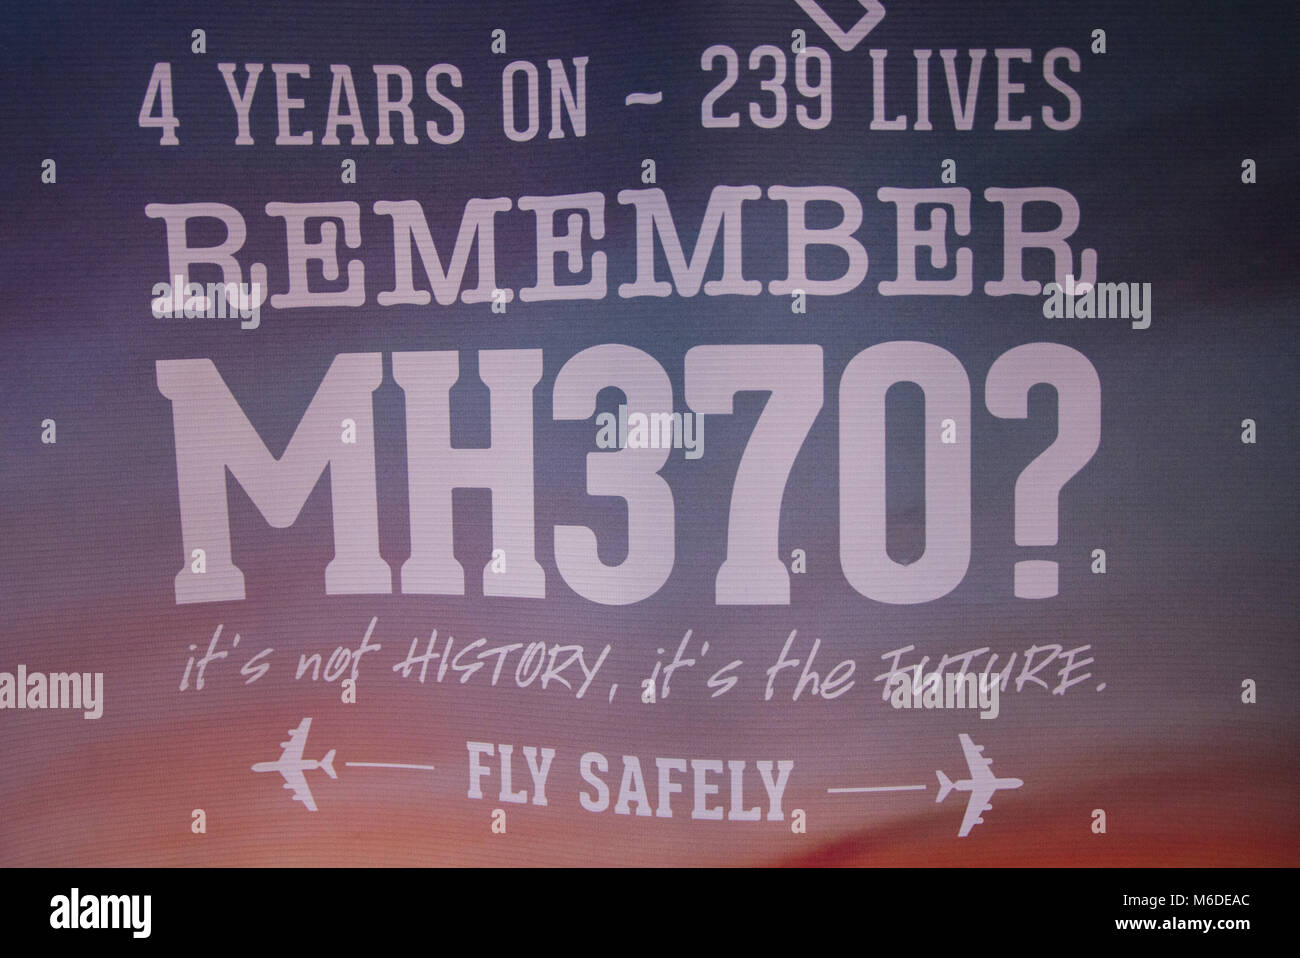 Kuala Lumpur, KL, Malaysia. 3rd Mar, 2018. A MH370 poster seen at the 4th Annual MH370 Remembrance event. Hundreds Stock Photo